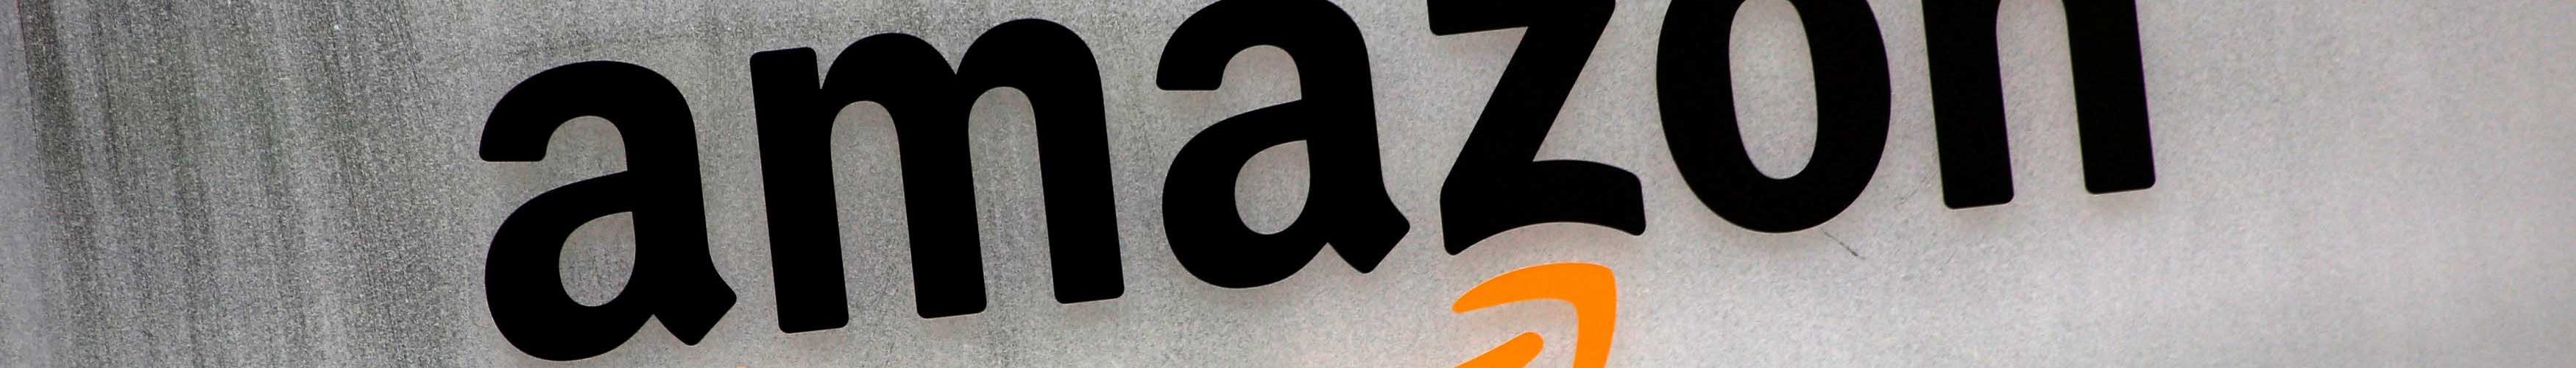 Amazon.com's logo is seen at Amazon Japan's office building in Tokyo, Japan, August 8, 2016. REUTERS/Kim Kyung-Hoon - RTSLR6W